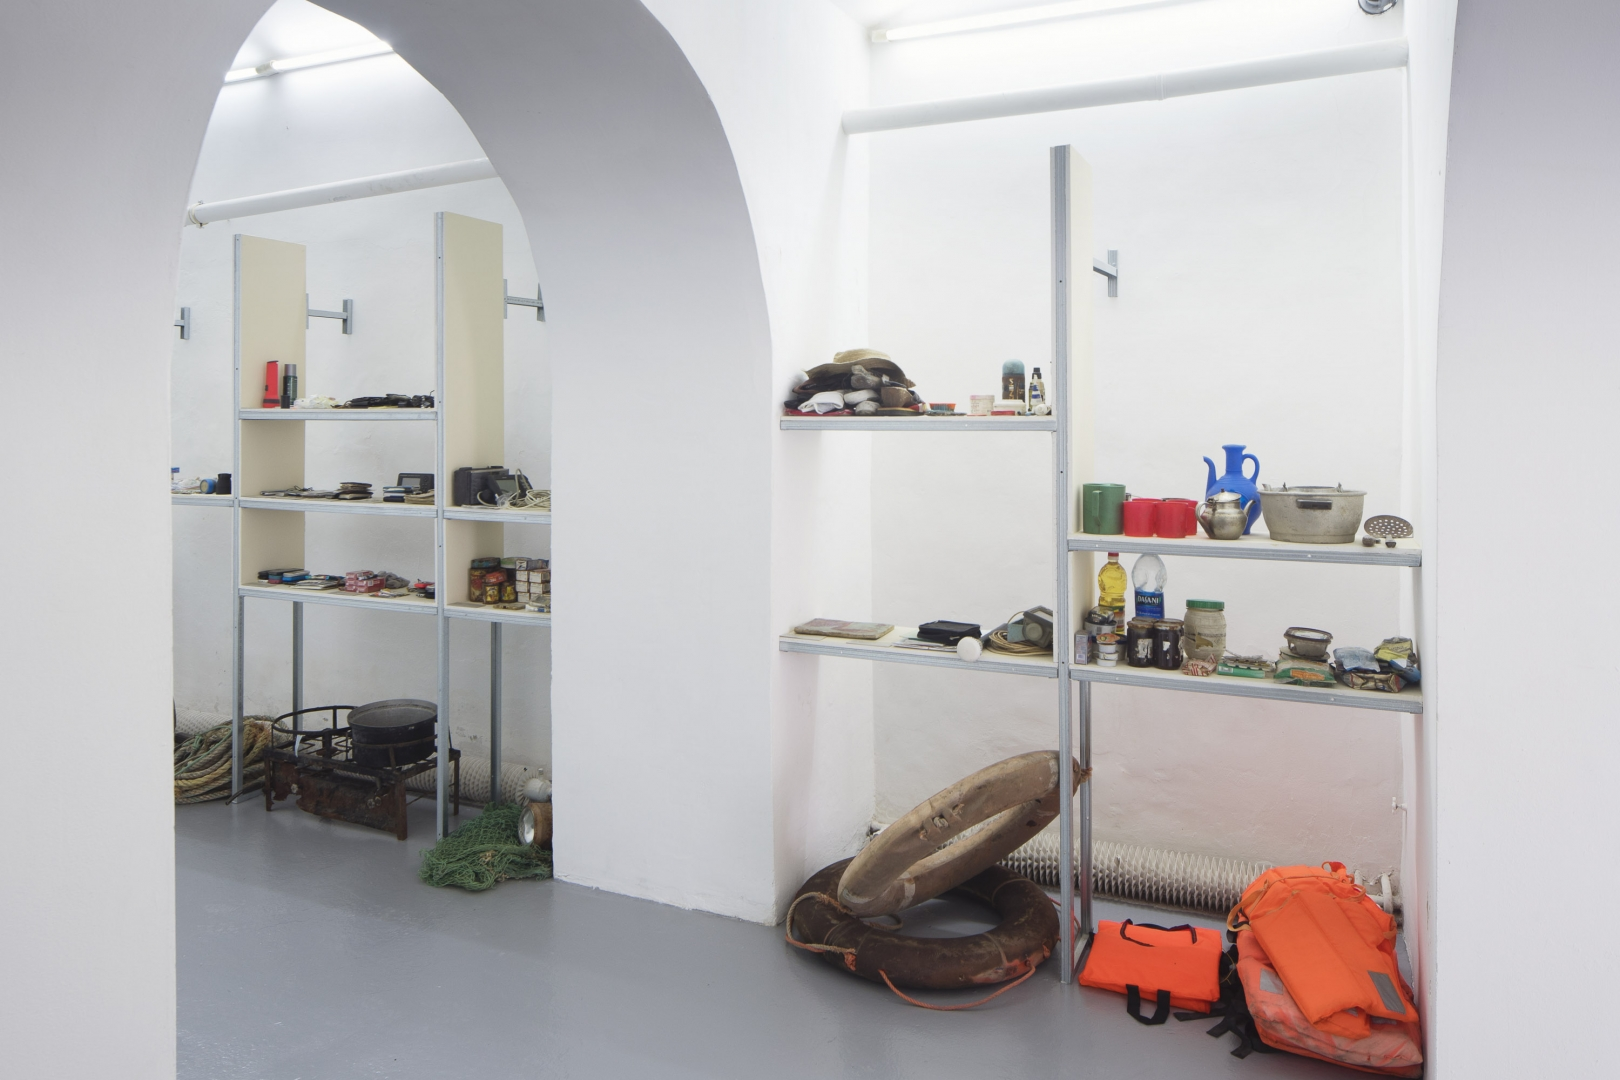 Thomas Kilpper & Massimo Ricciardo, Inventories of Escape, 2014 – 2020